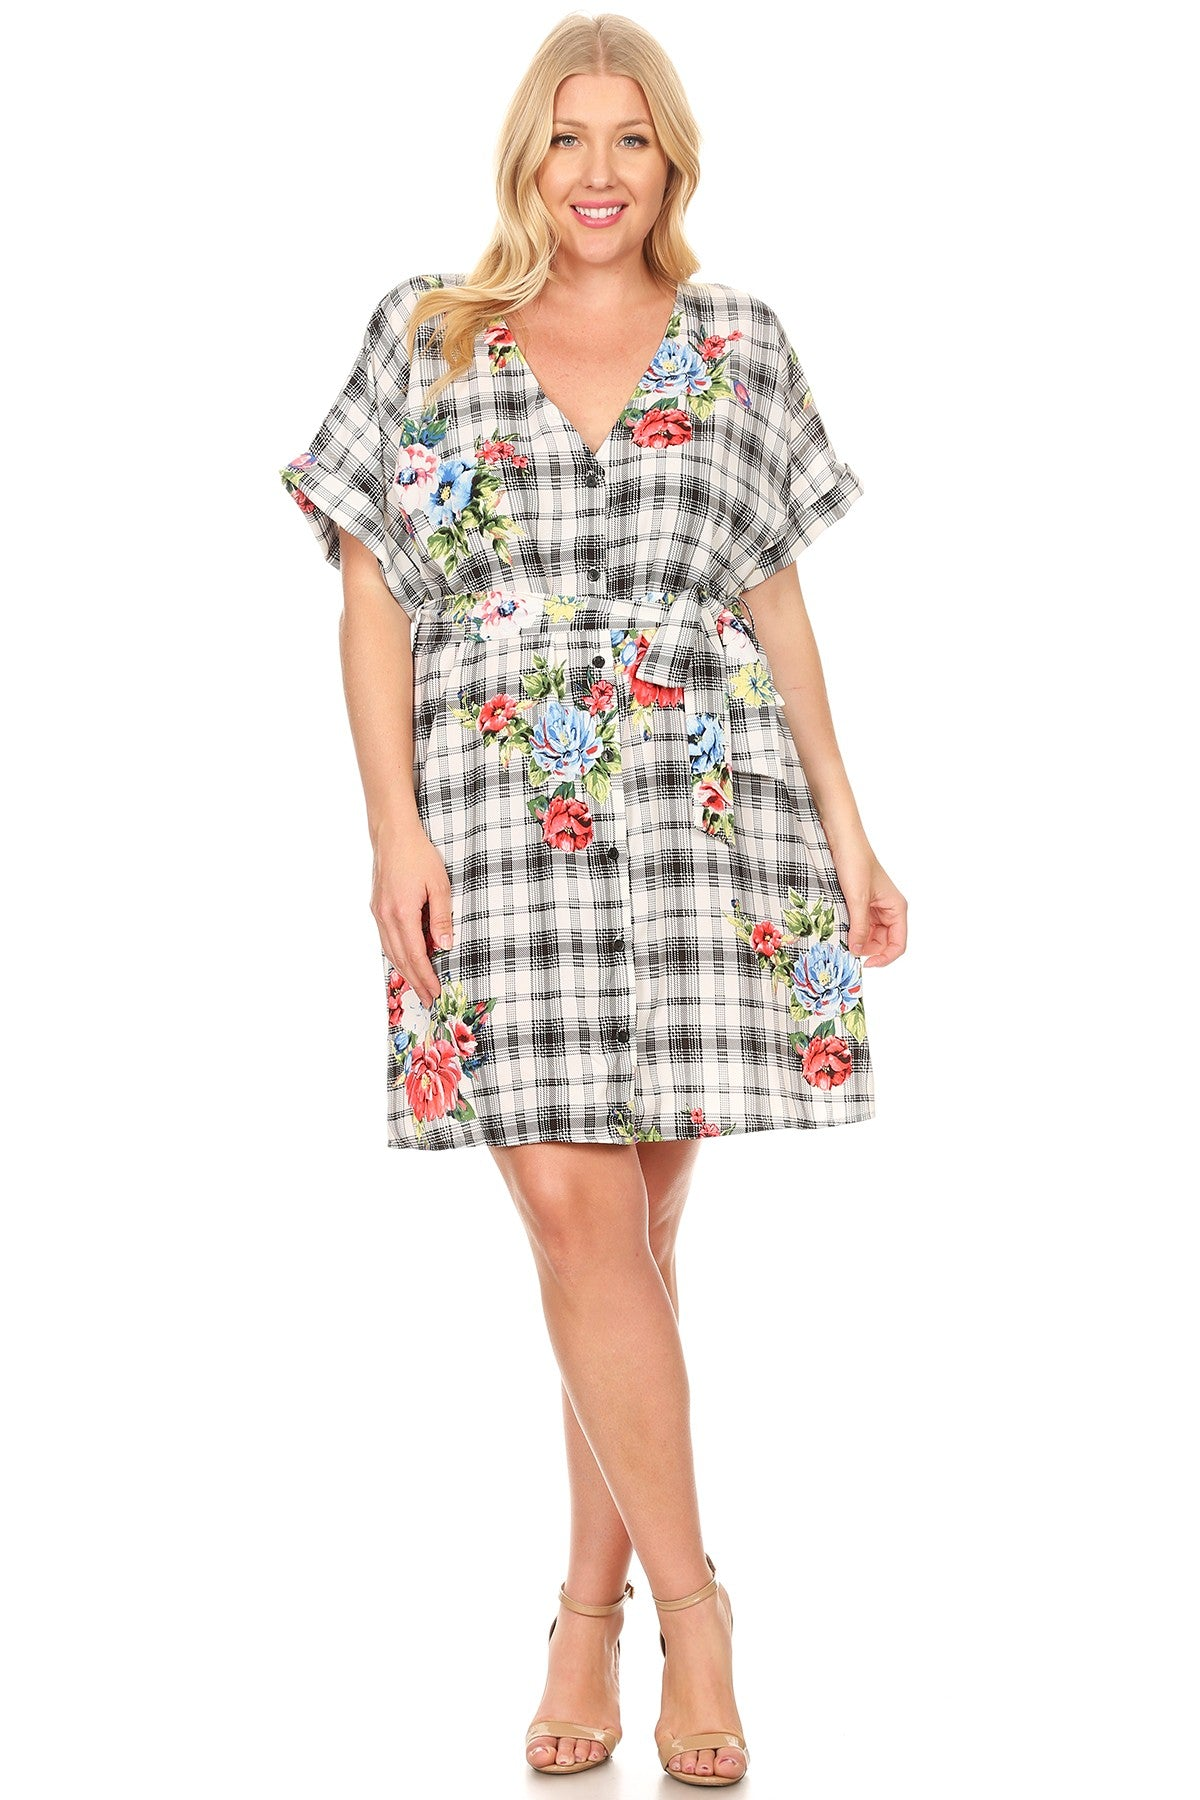 Lilian Relaxed Fit Waist Tie Plaid Floral Short Dress